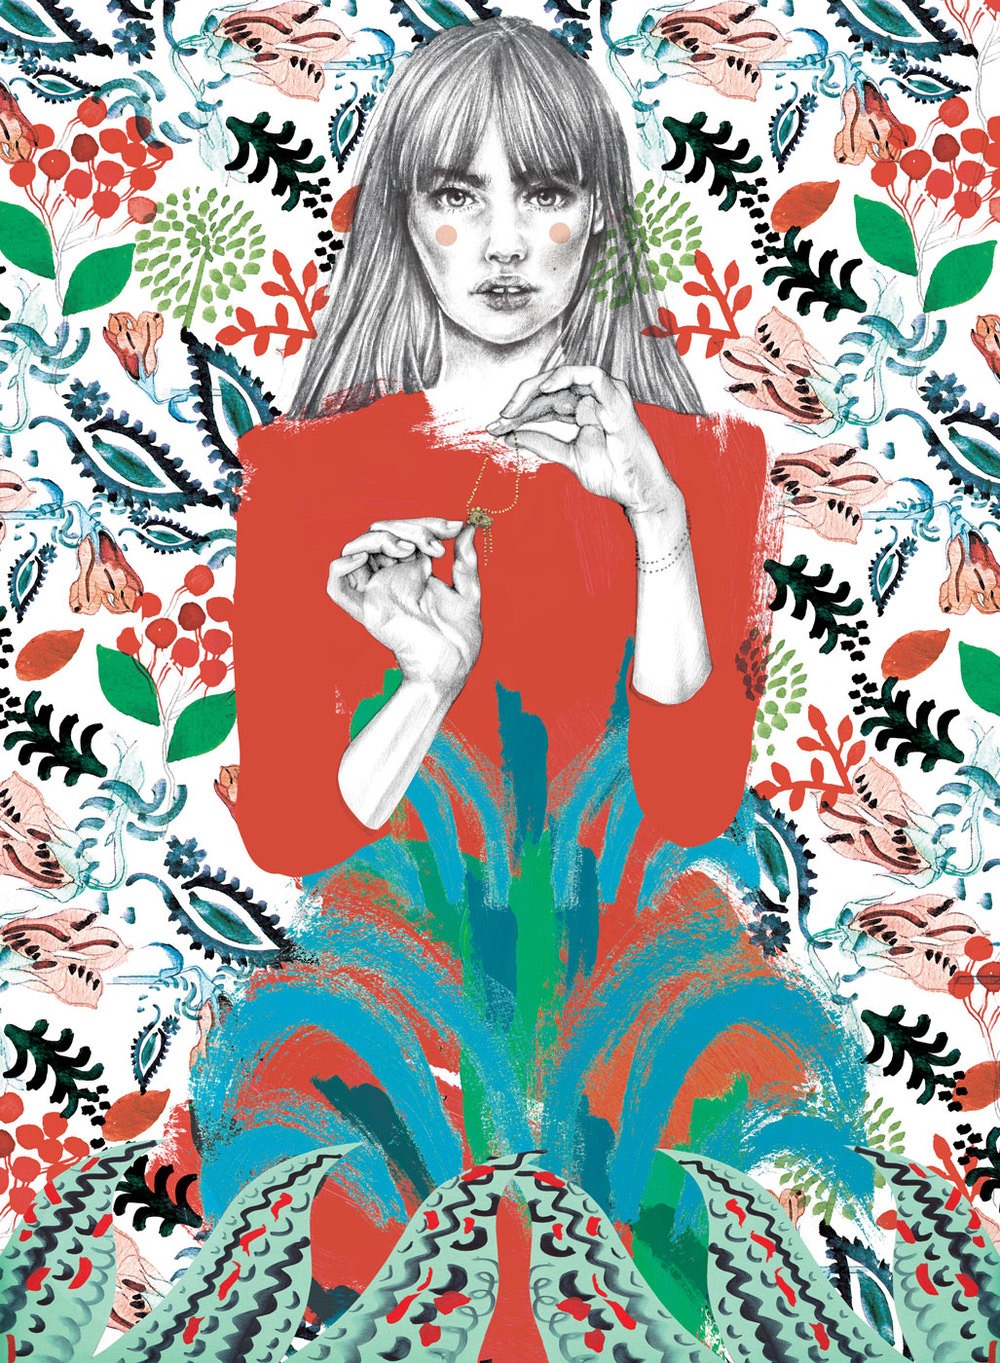 illustrator, illustrators, illustration, illustrations, flower, floral, flowers, leaf, leaves, paisley, tesselate, tessellation, fern, ferns, plant, plants, woman, women, blush, blushing, portrait